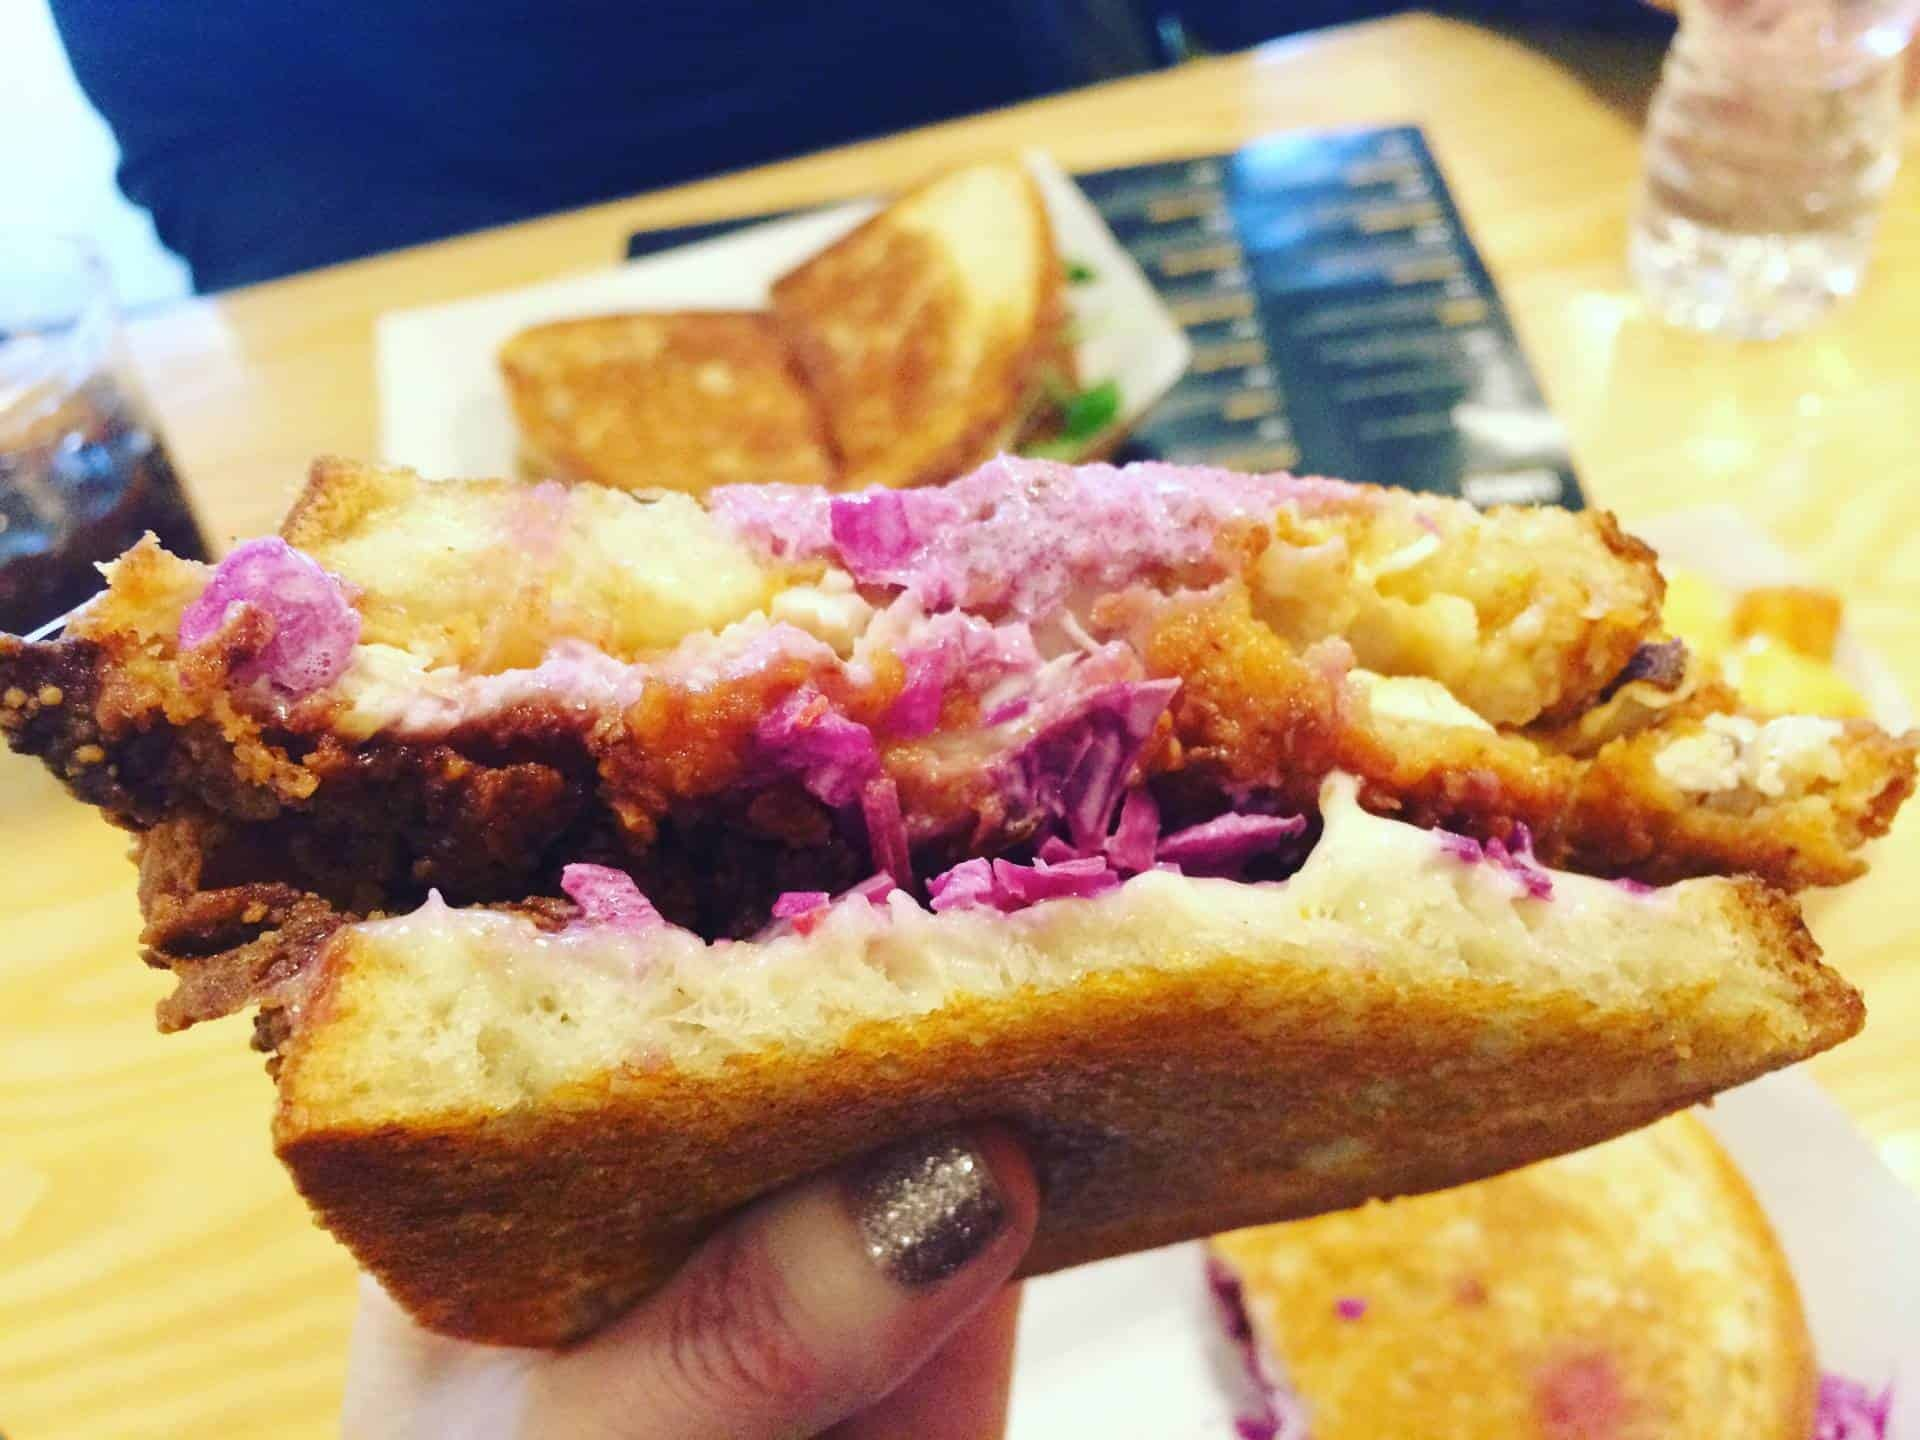 Fried Chicken and slaw sandwich from Melt Shop